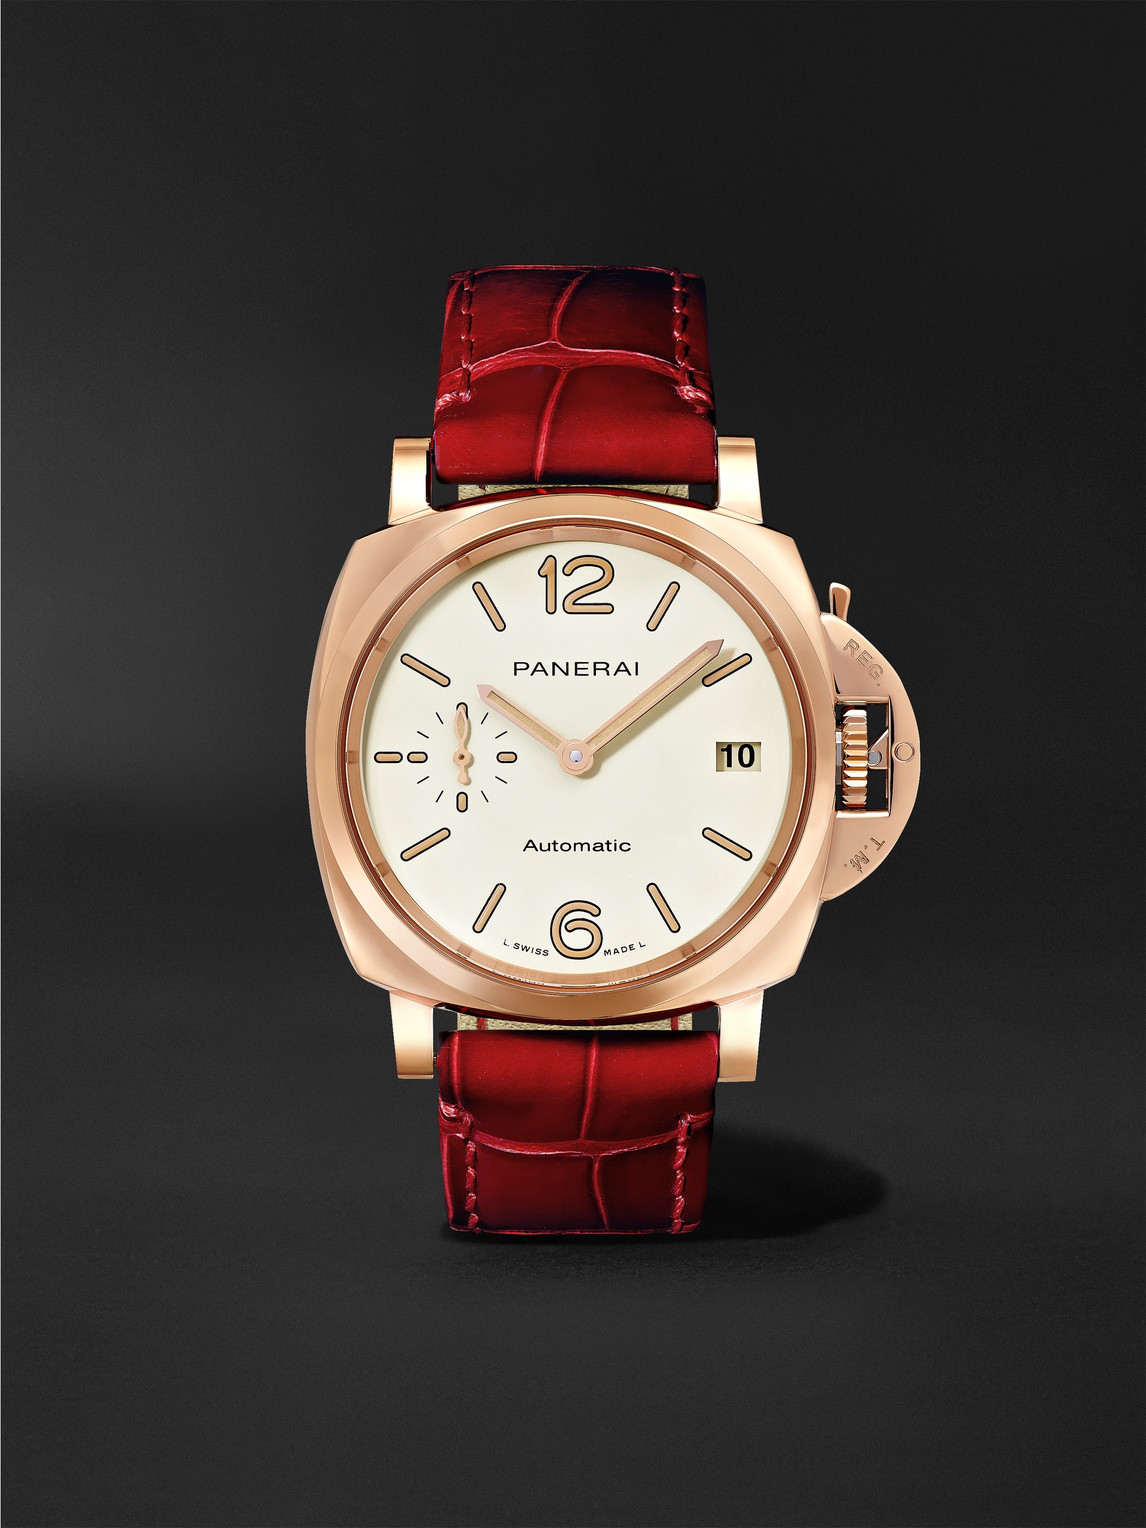 Panerai Luminor Due Automatic 38mm Goldtech And Alligator Watch In Red